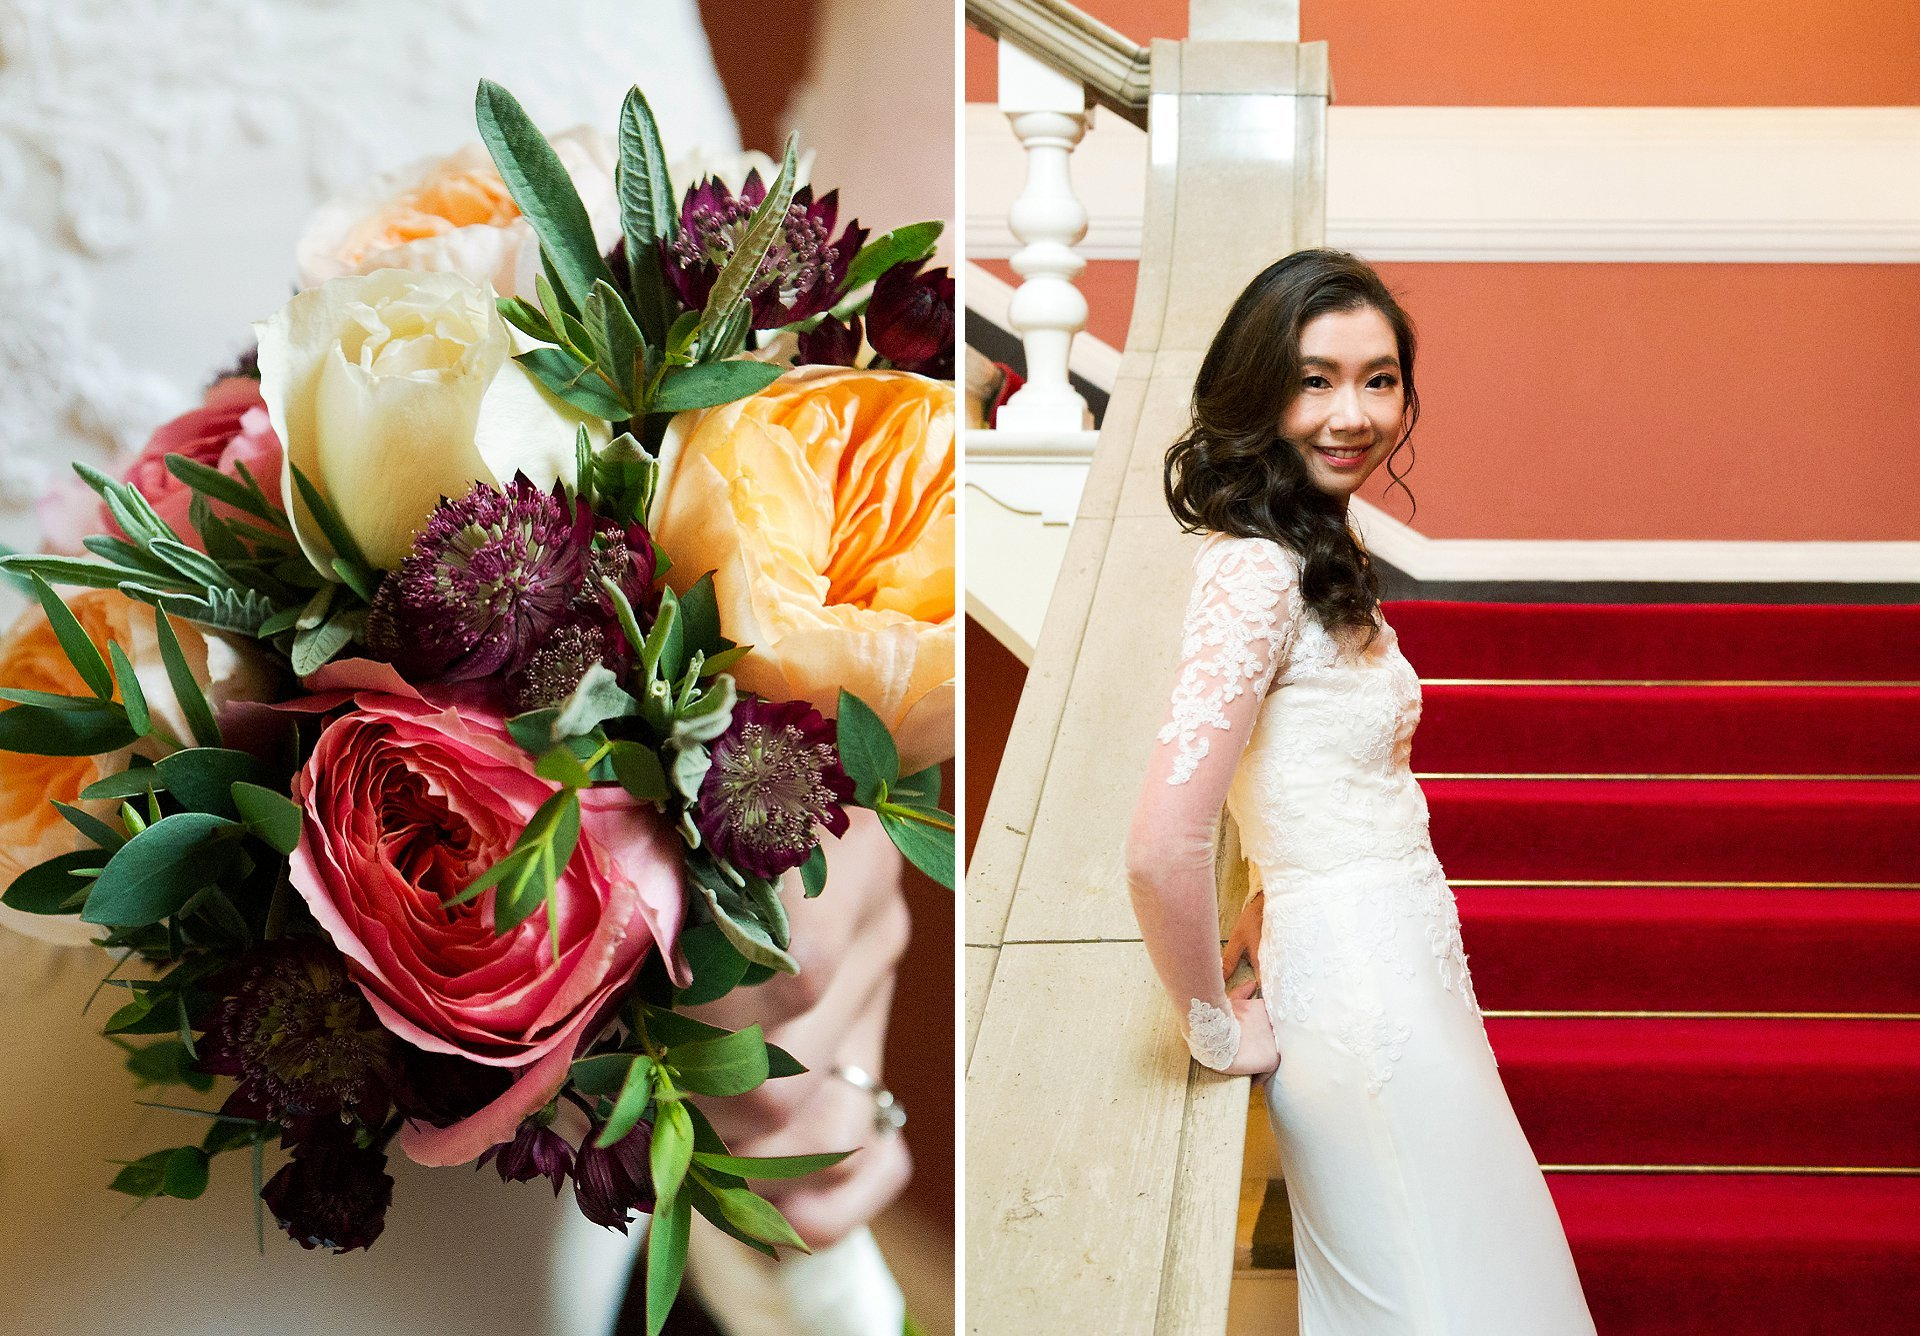 Chinese wedding Chelsea Register Office bride and bouquet before her ceremony in the Rossetti Room